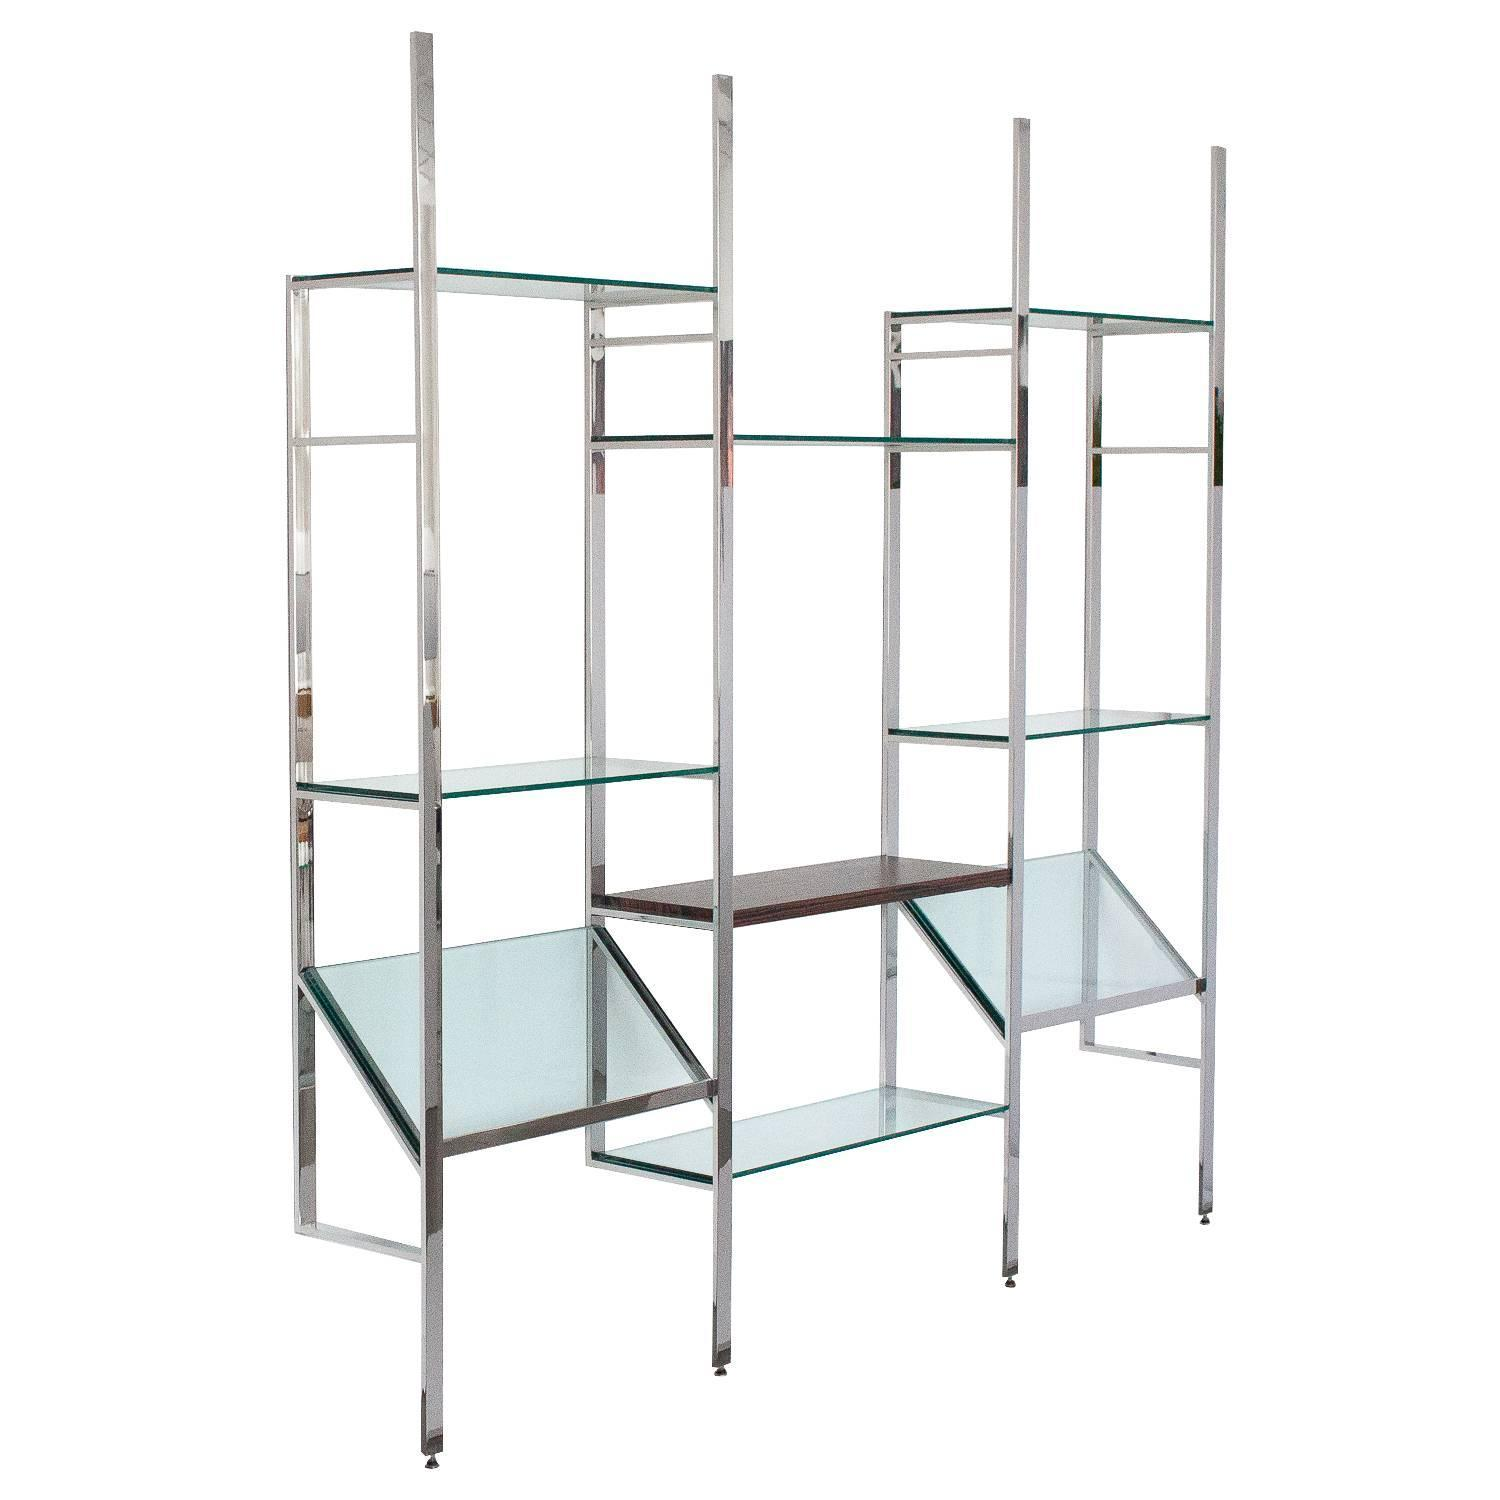 Milo baughman chrome and glass wall mounted shelving Wall mounted shelf systems